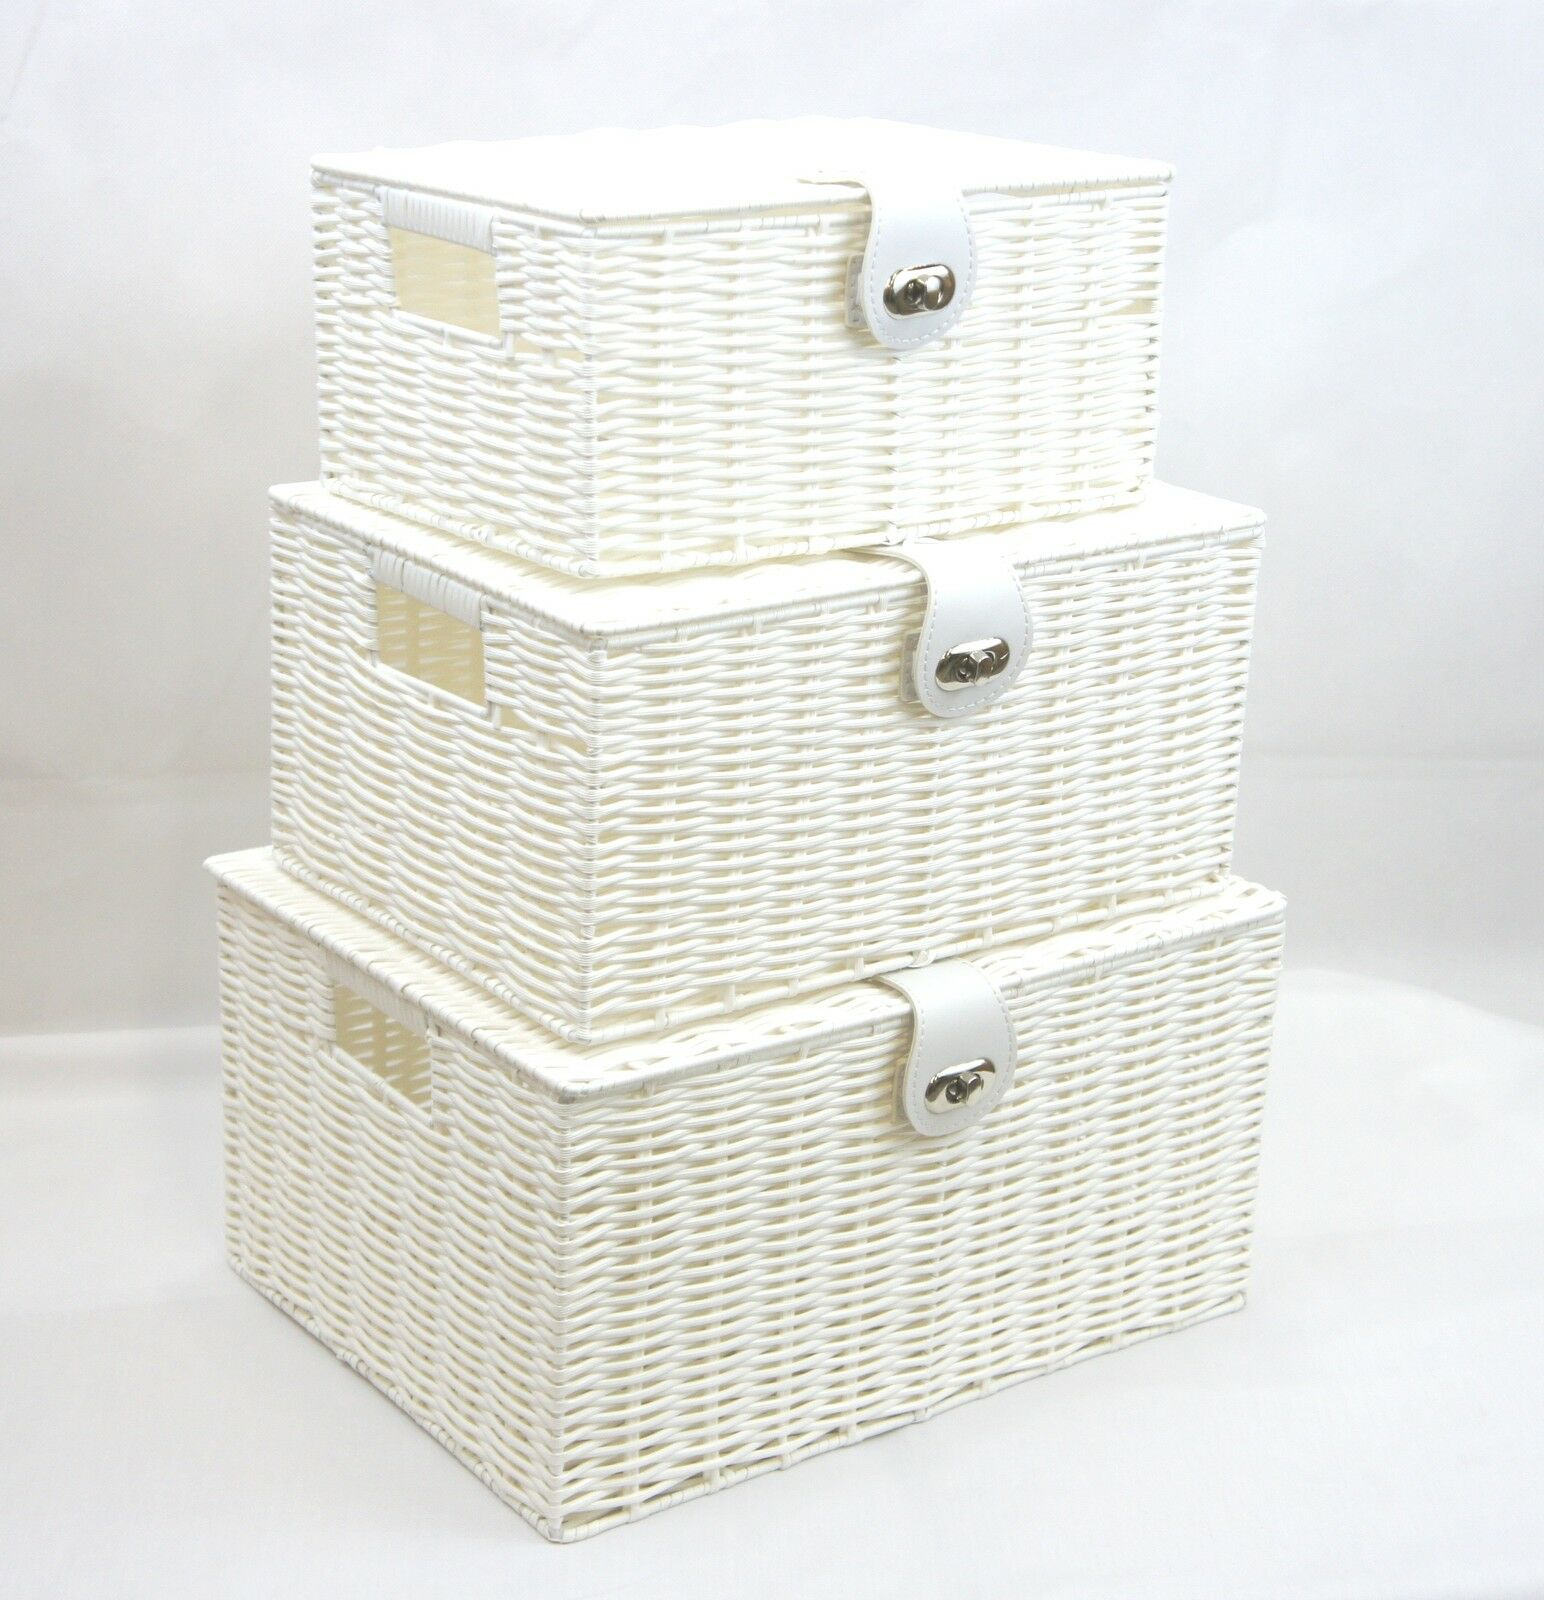 Arpan White Resin Woven Hamper Storage Basket Box With Lid